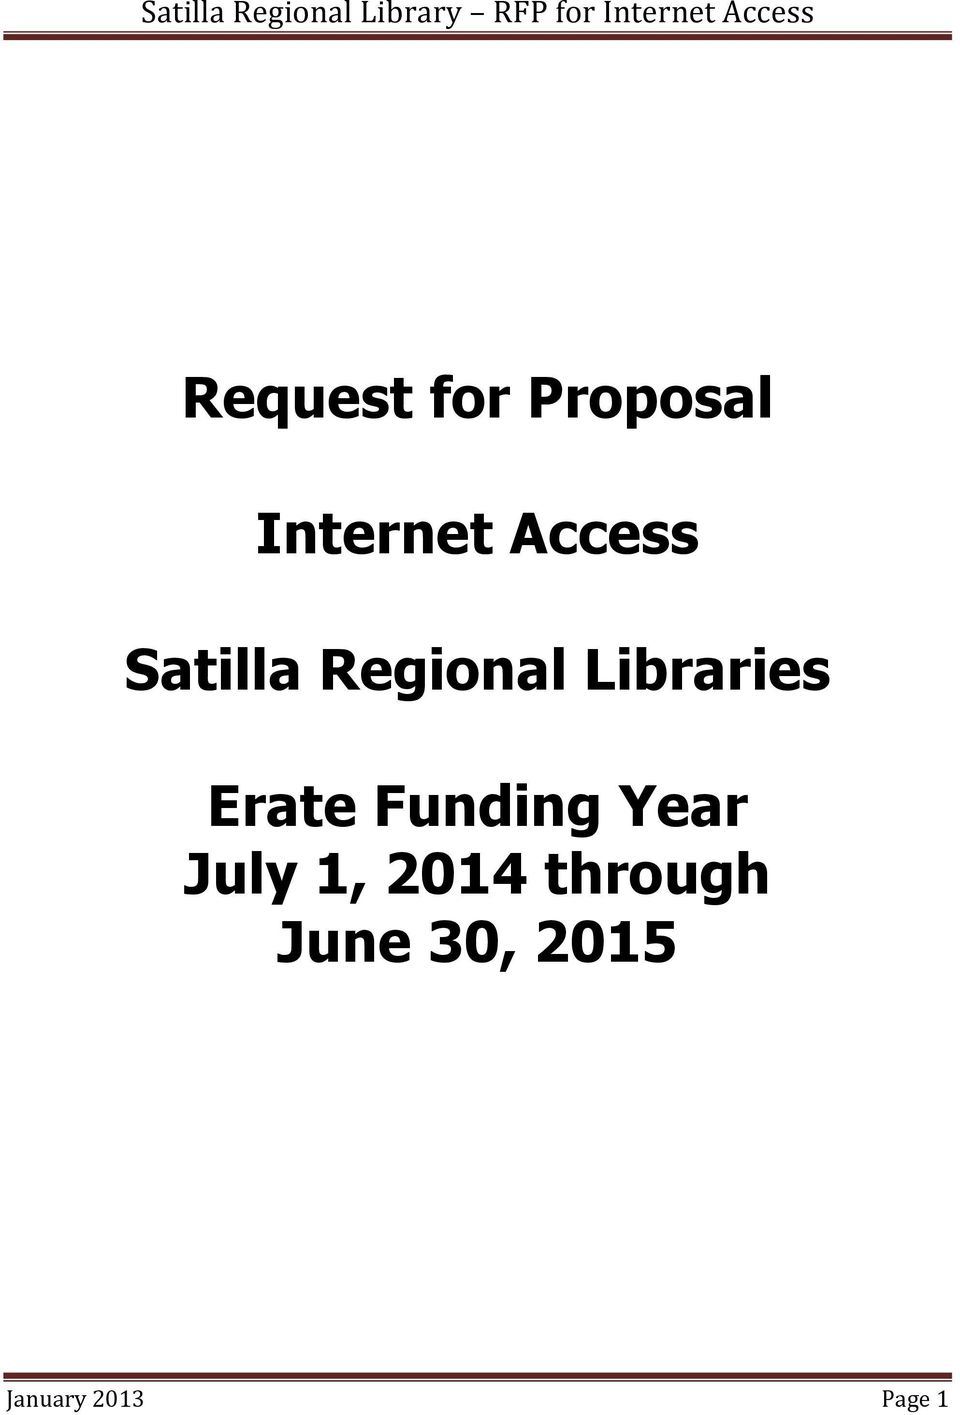 Erate Funding Year July 1, 2014